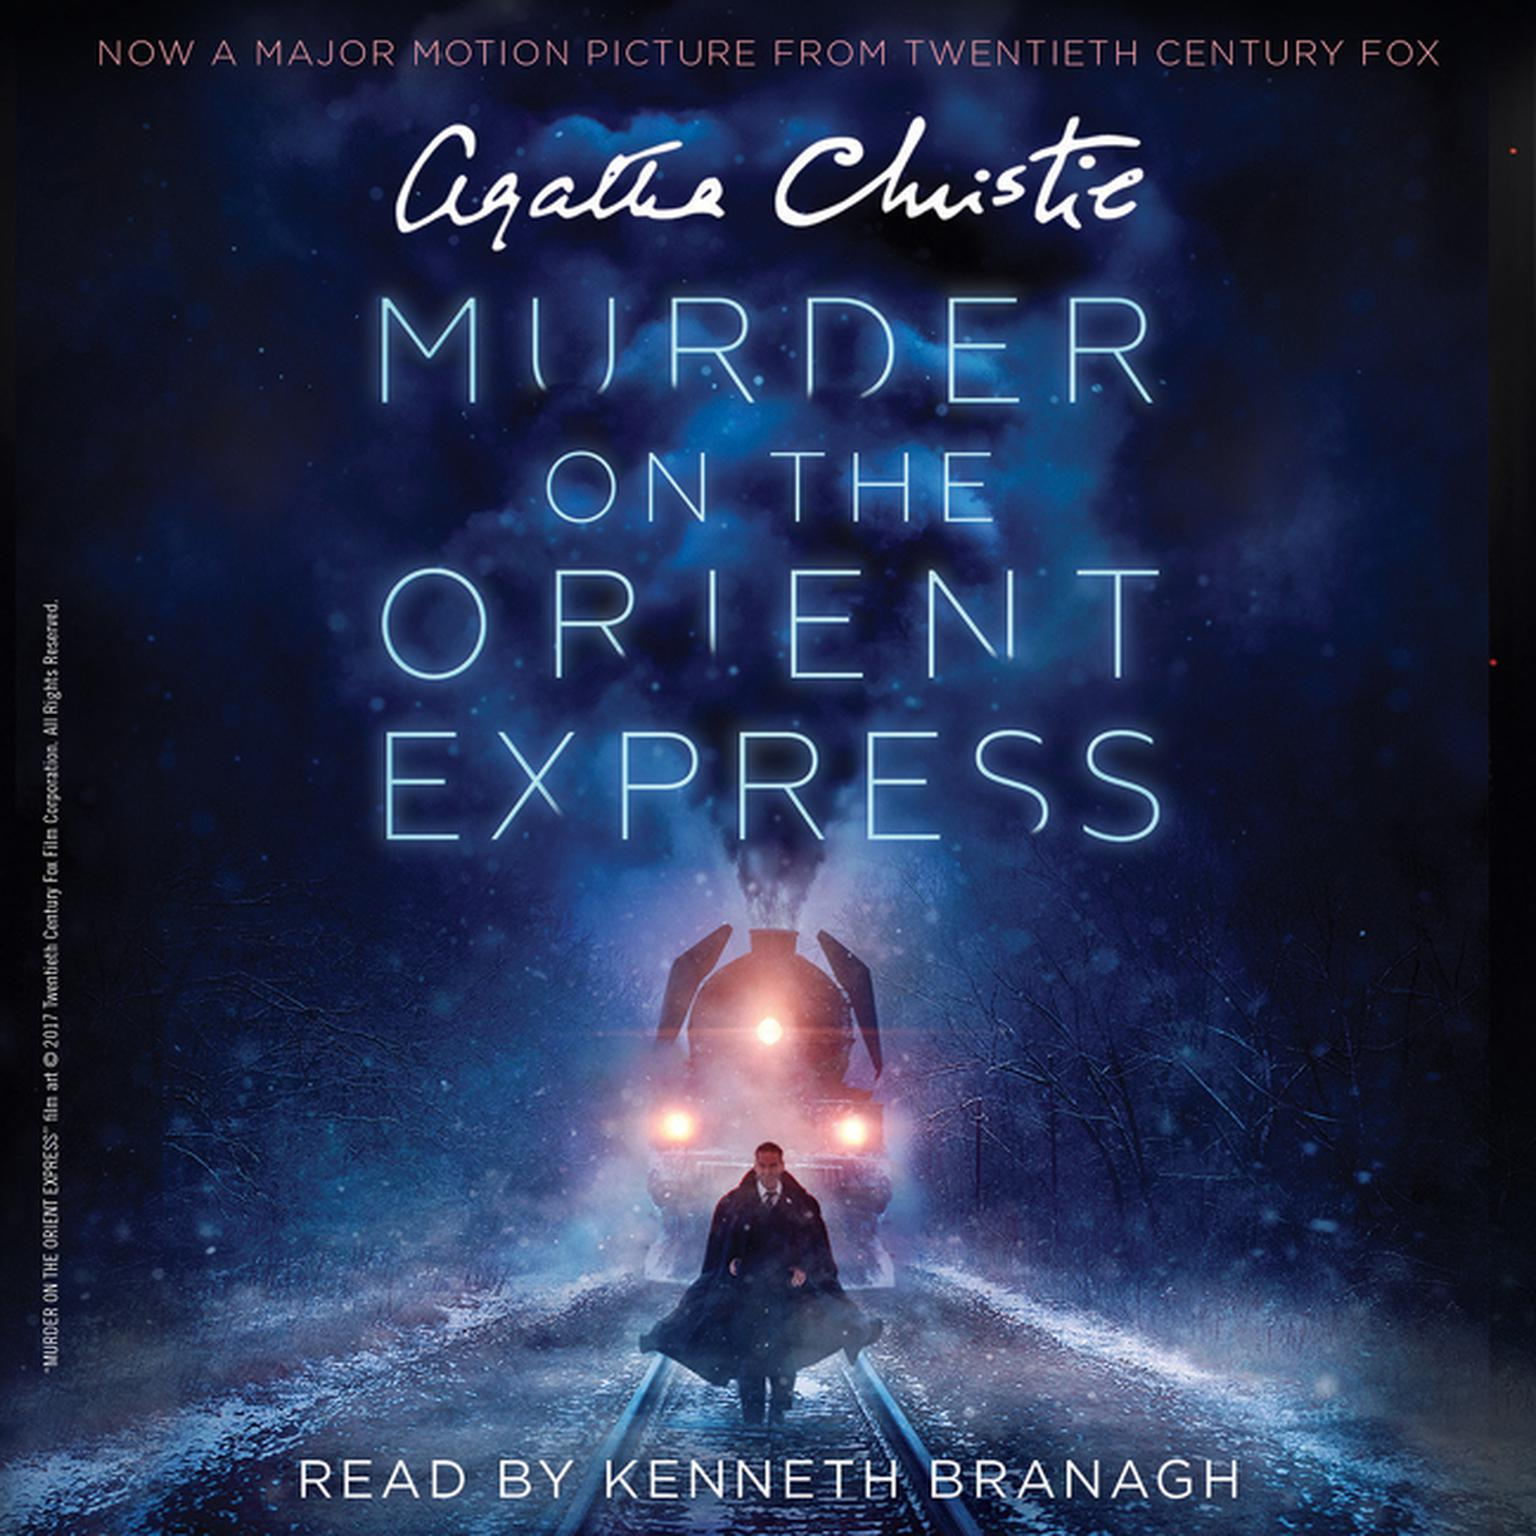 Murder on the Orient Express [Movie Tie-in]: A Hercule Poirot Mystery Audiobook, by Agatha Christie